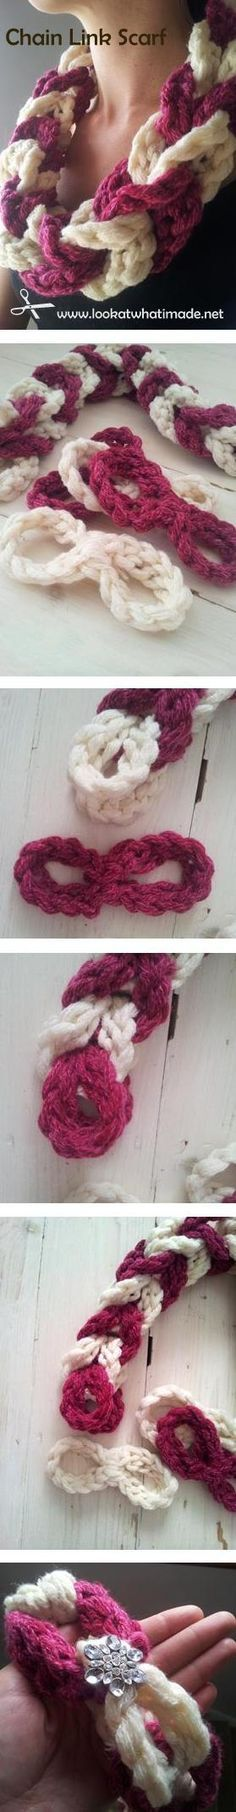 #Crochet_Tutorial_Pattern -- Free Crochet Chain Link Scarf Pattern -- Many ways to use this interesting technique. 4U from #KnittingGuru ** http://www.pinterest.com/KnittingGuru